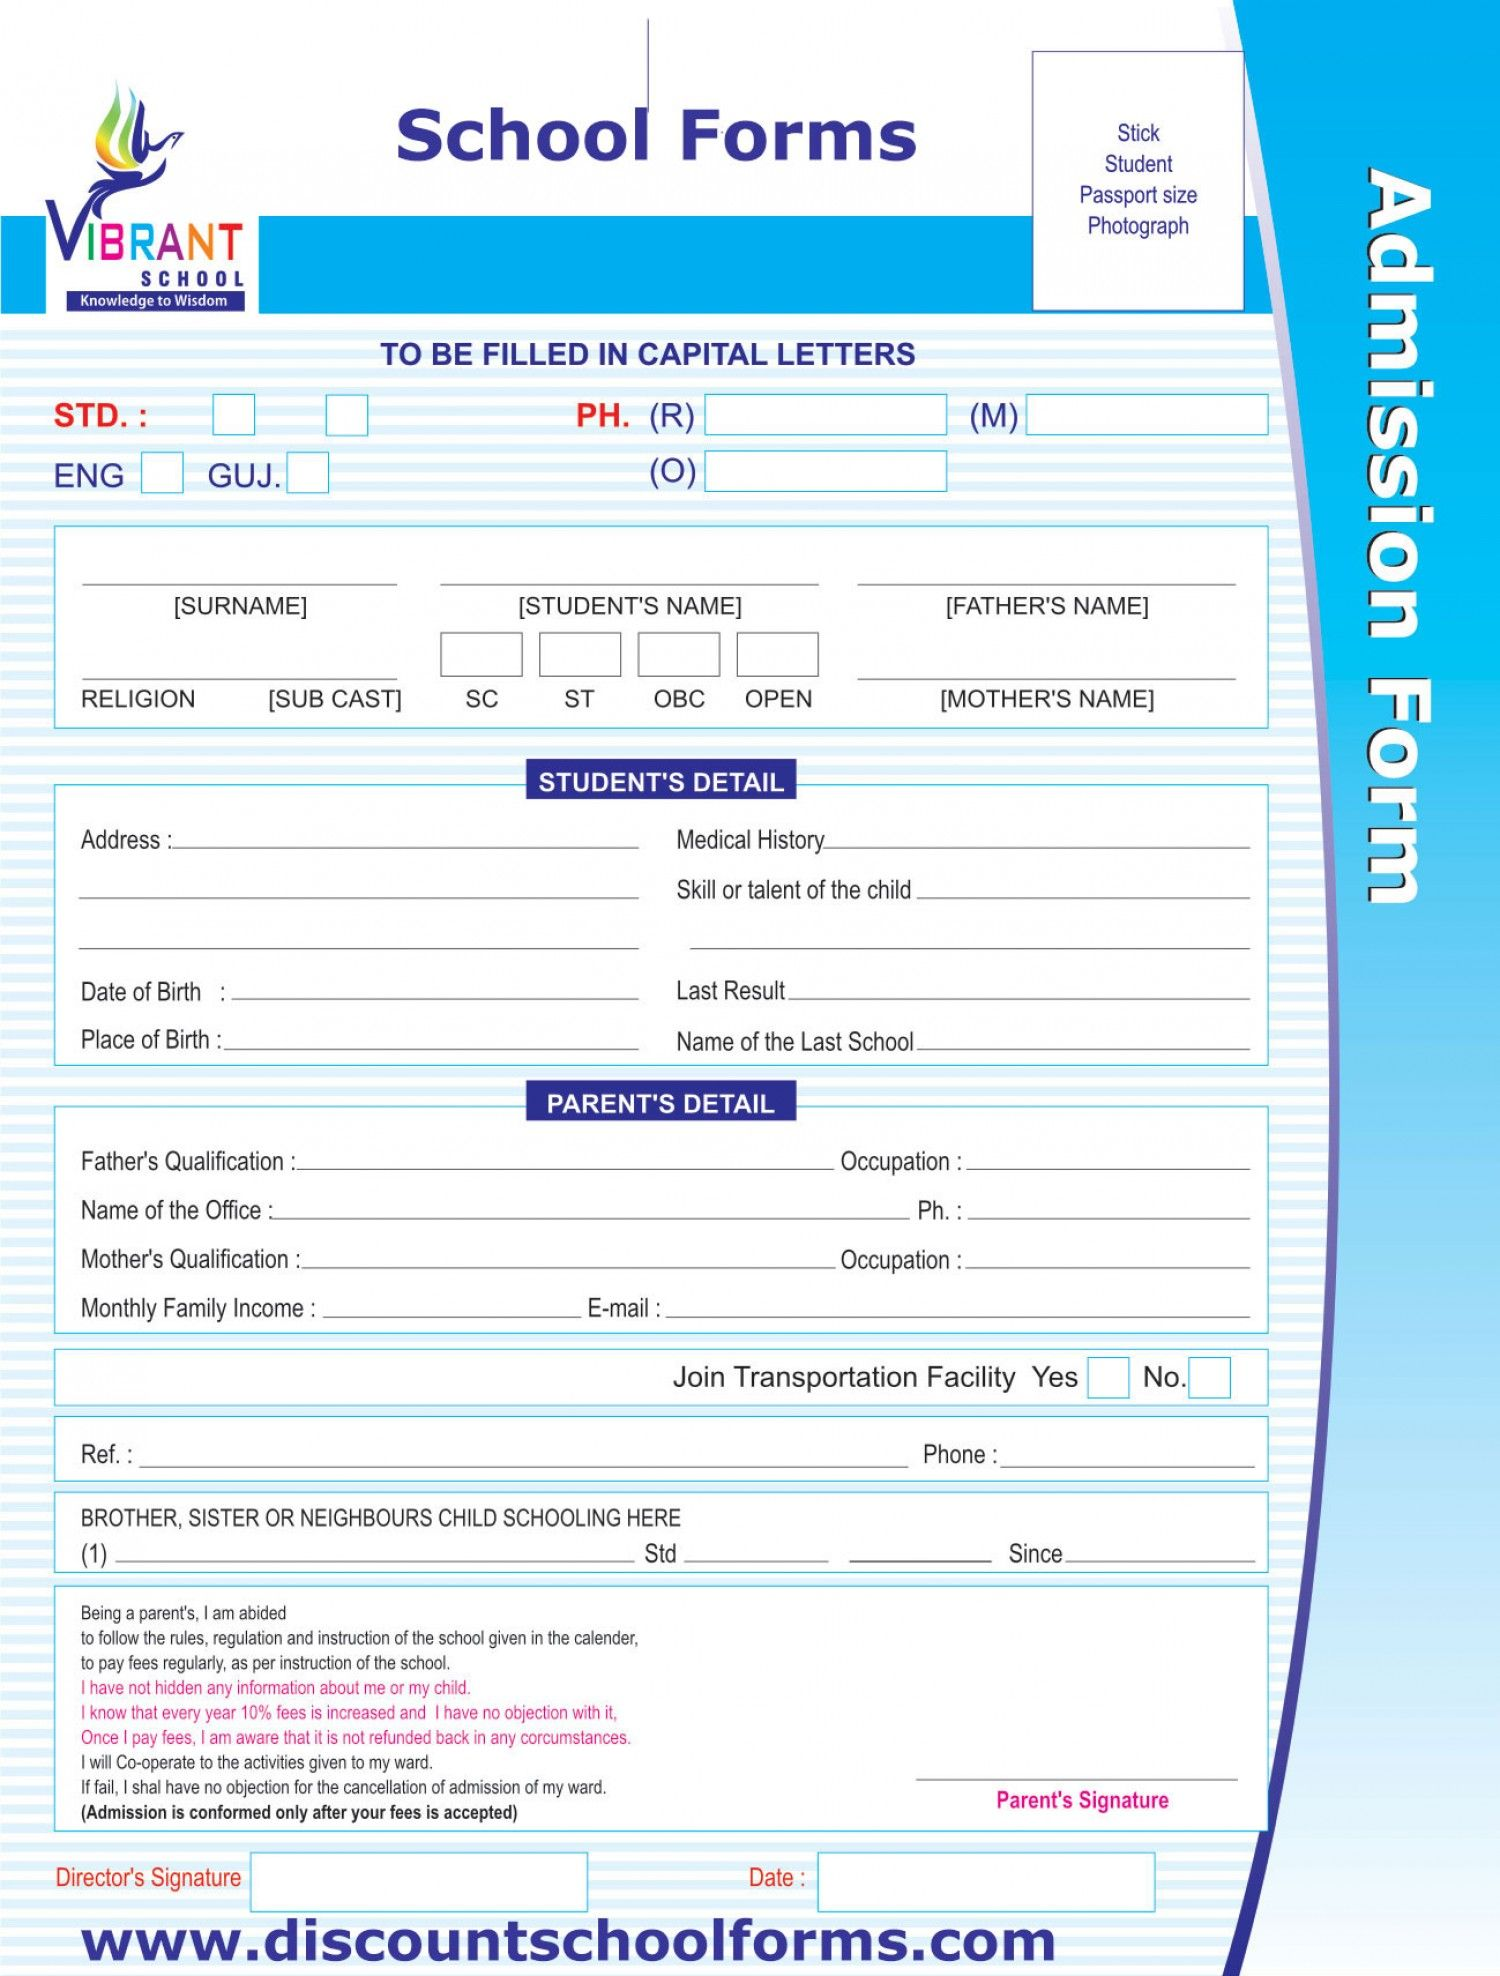 School Forms Infographic School Forms School Admission Form School Application